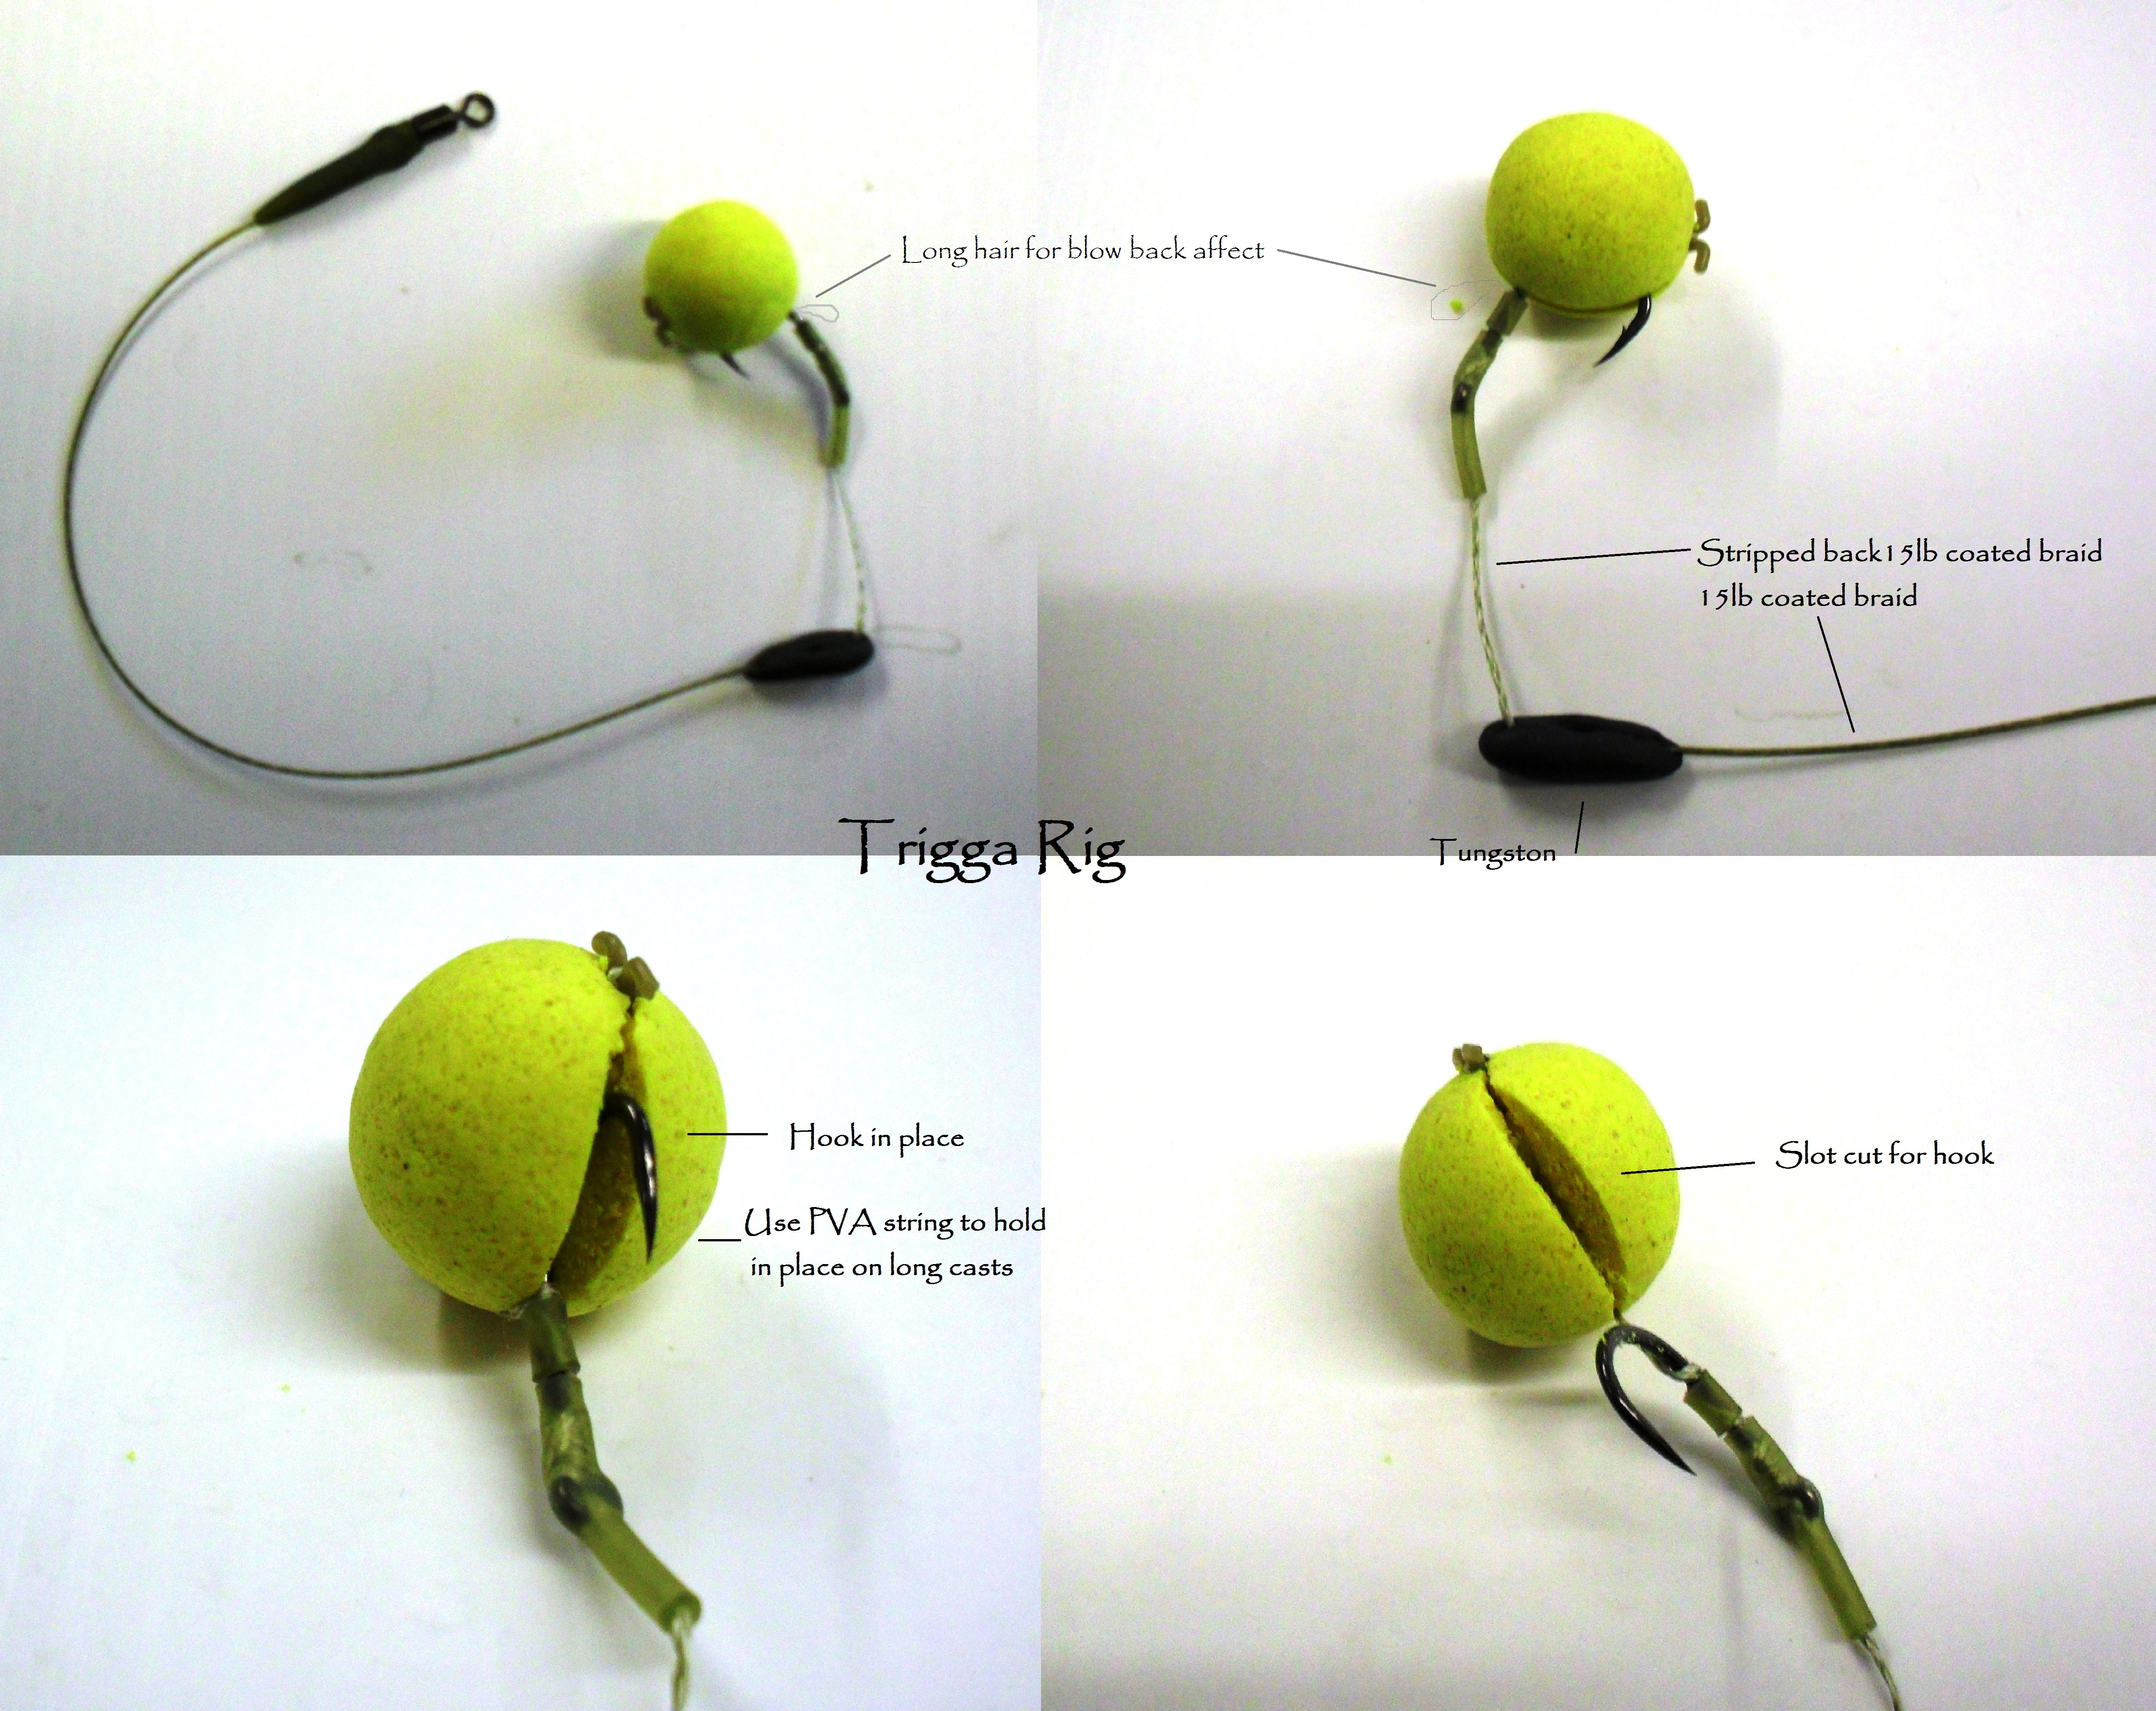 A porsche key ring wont catch you fish no limits angling blog 3trigga rig pooptronica Images